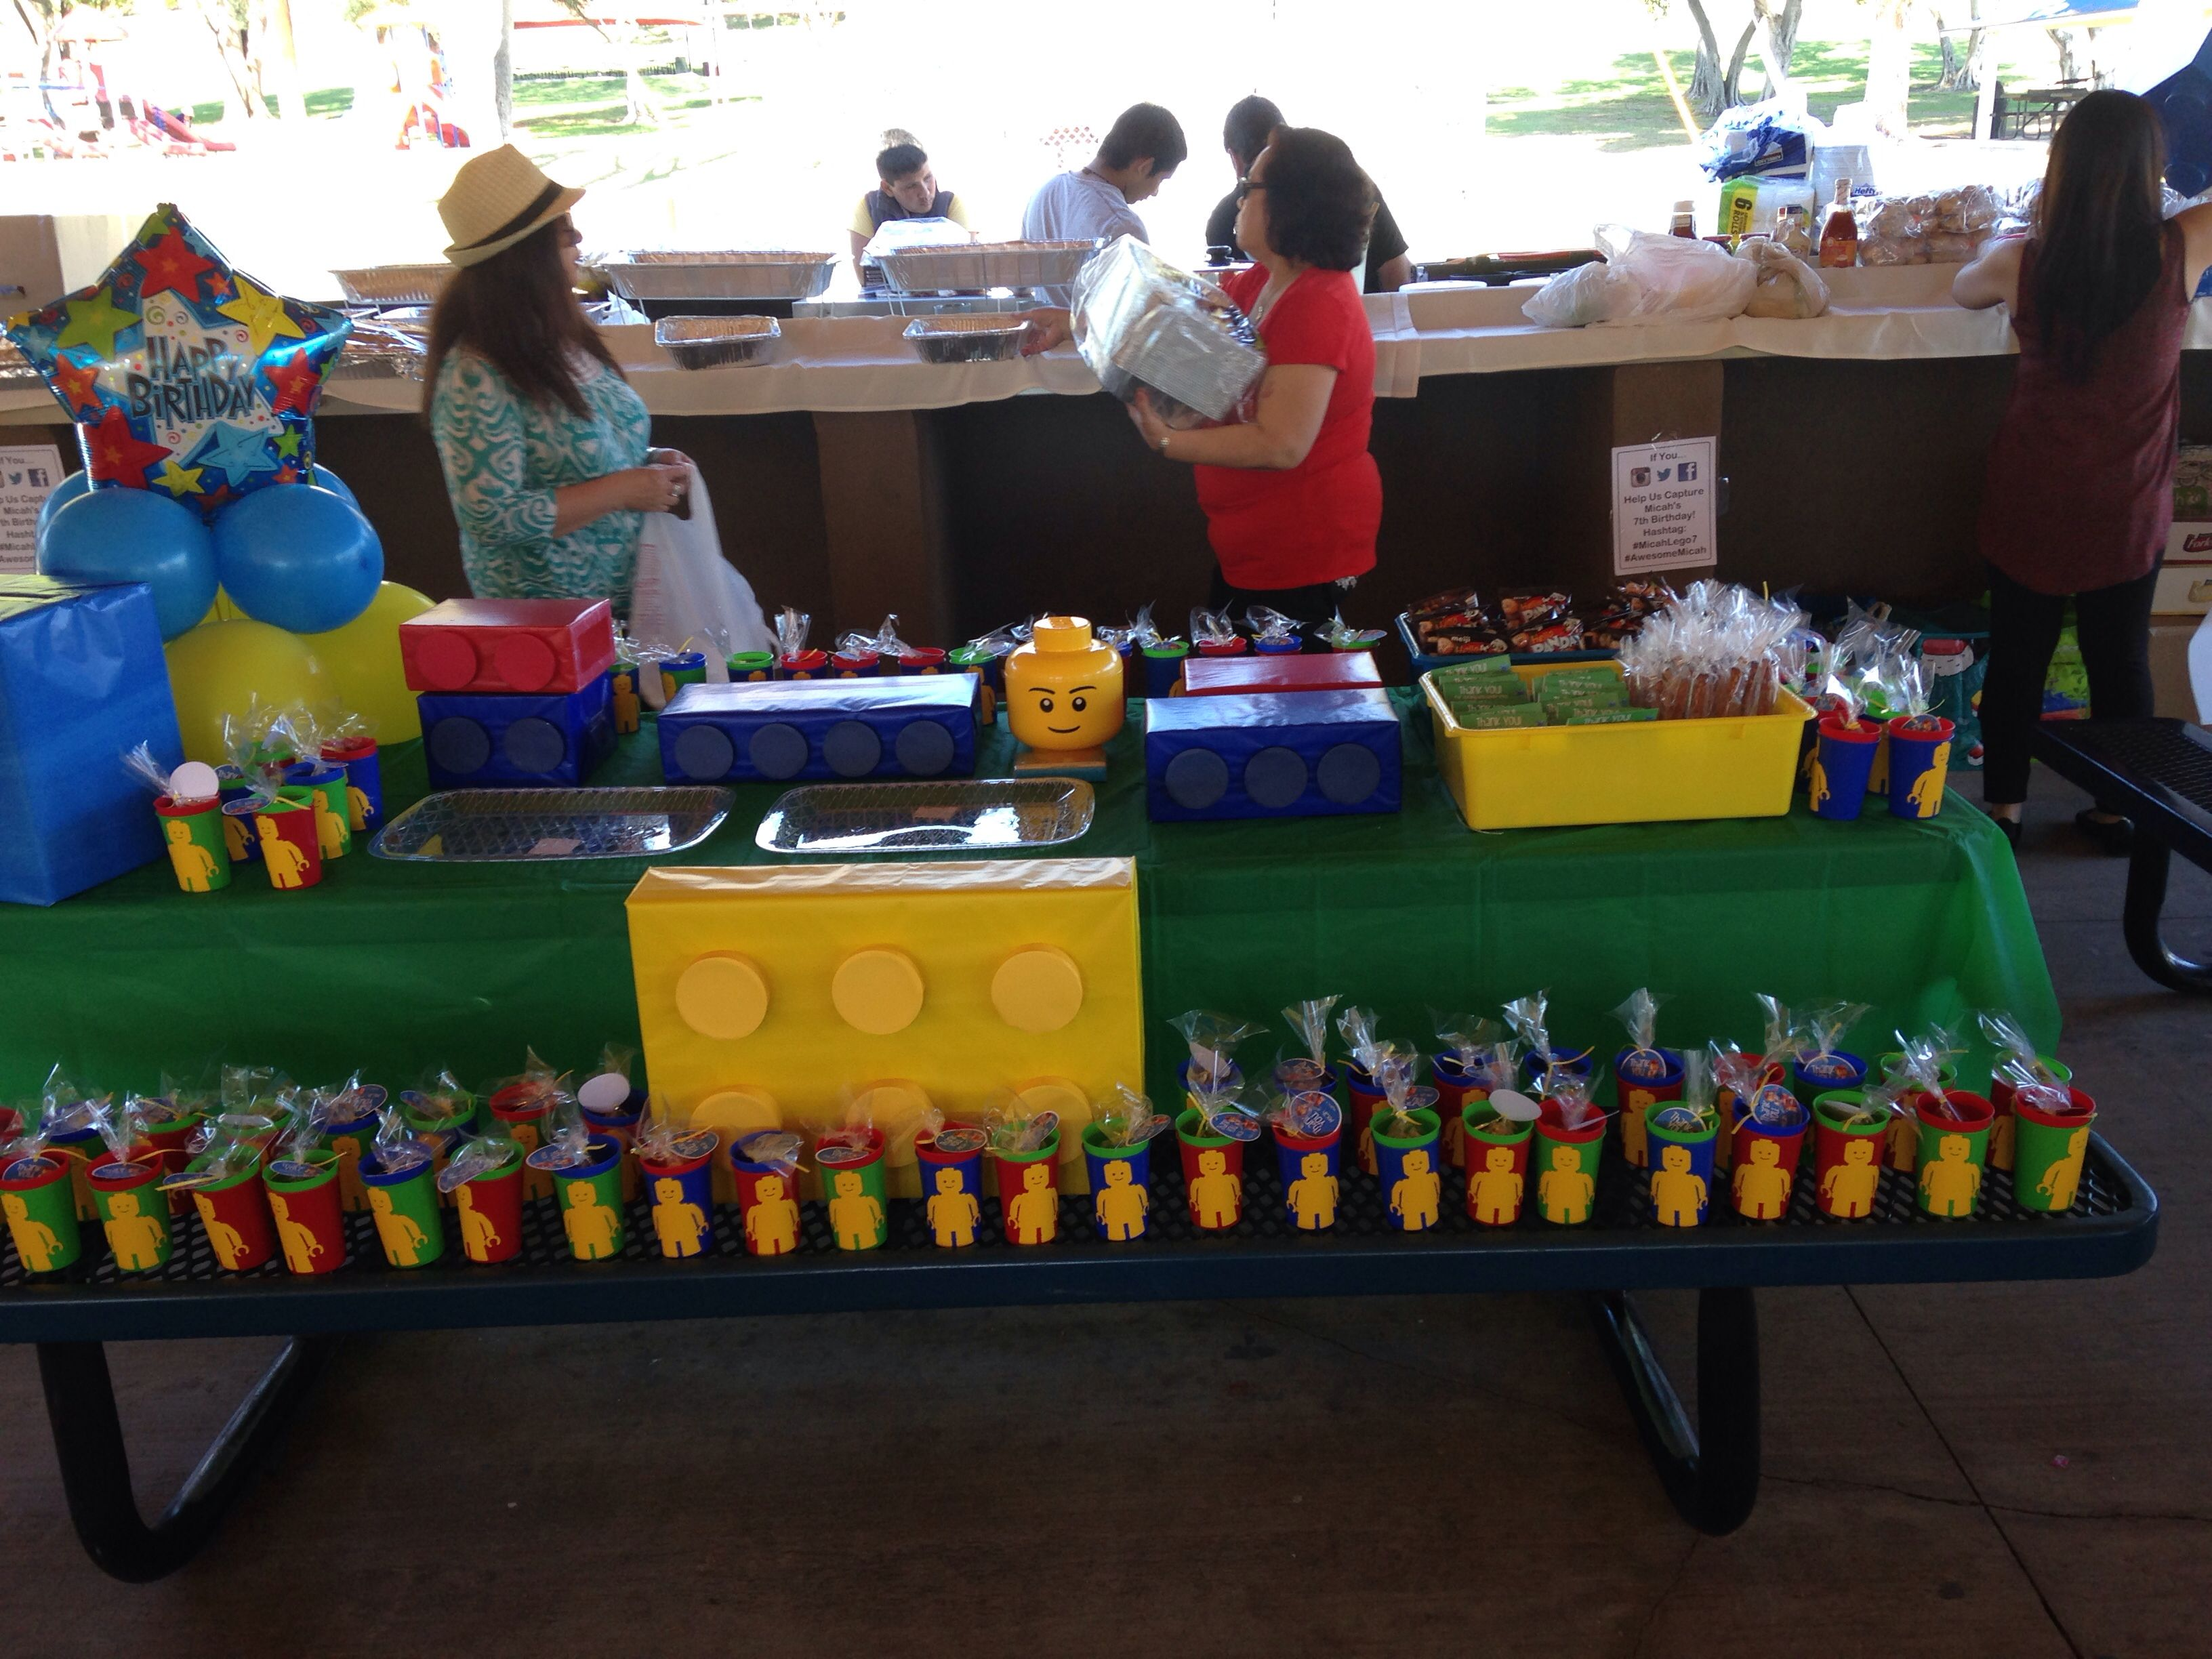 A Lego Themes Birthday Party For 7 Year Old Boy So Cute EverythingIsAwesome